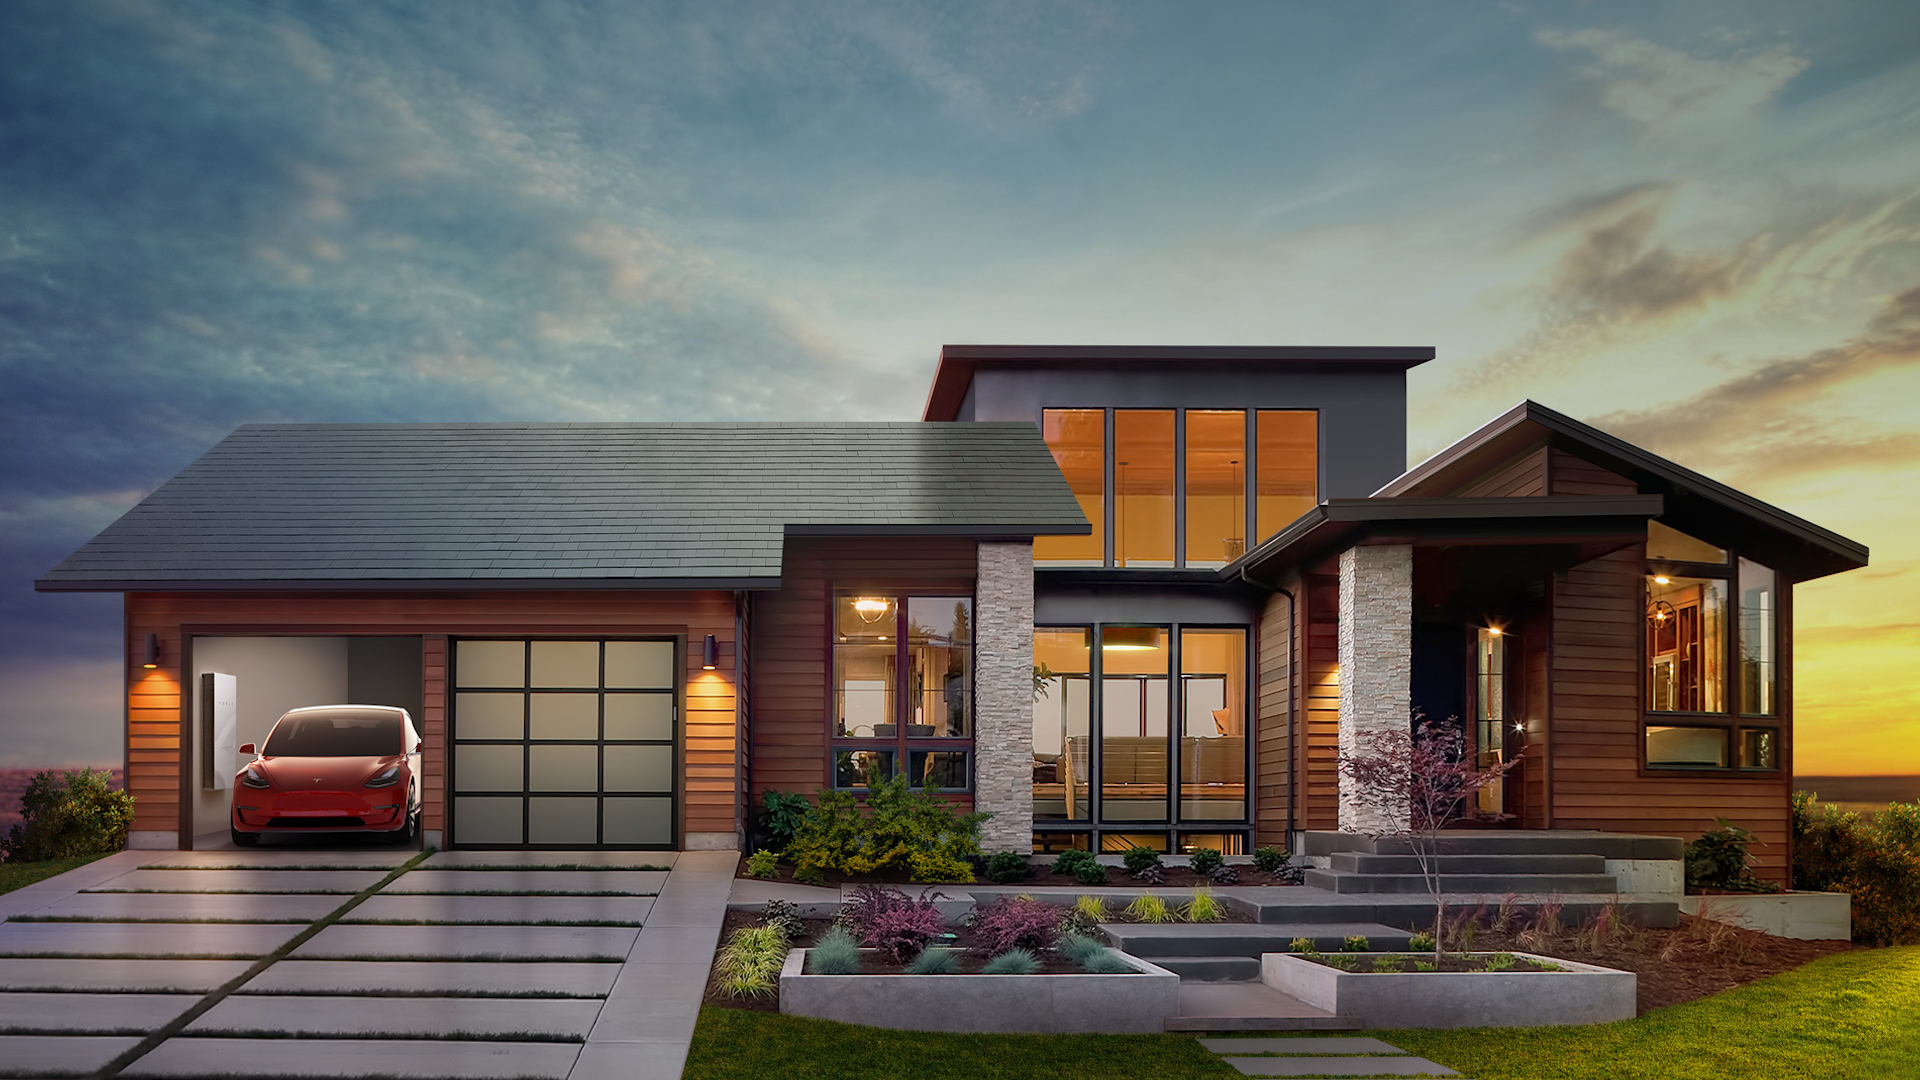 Good Tesla Is Selling Solar, Cars And Home Batteries, All Under One Roof